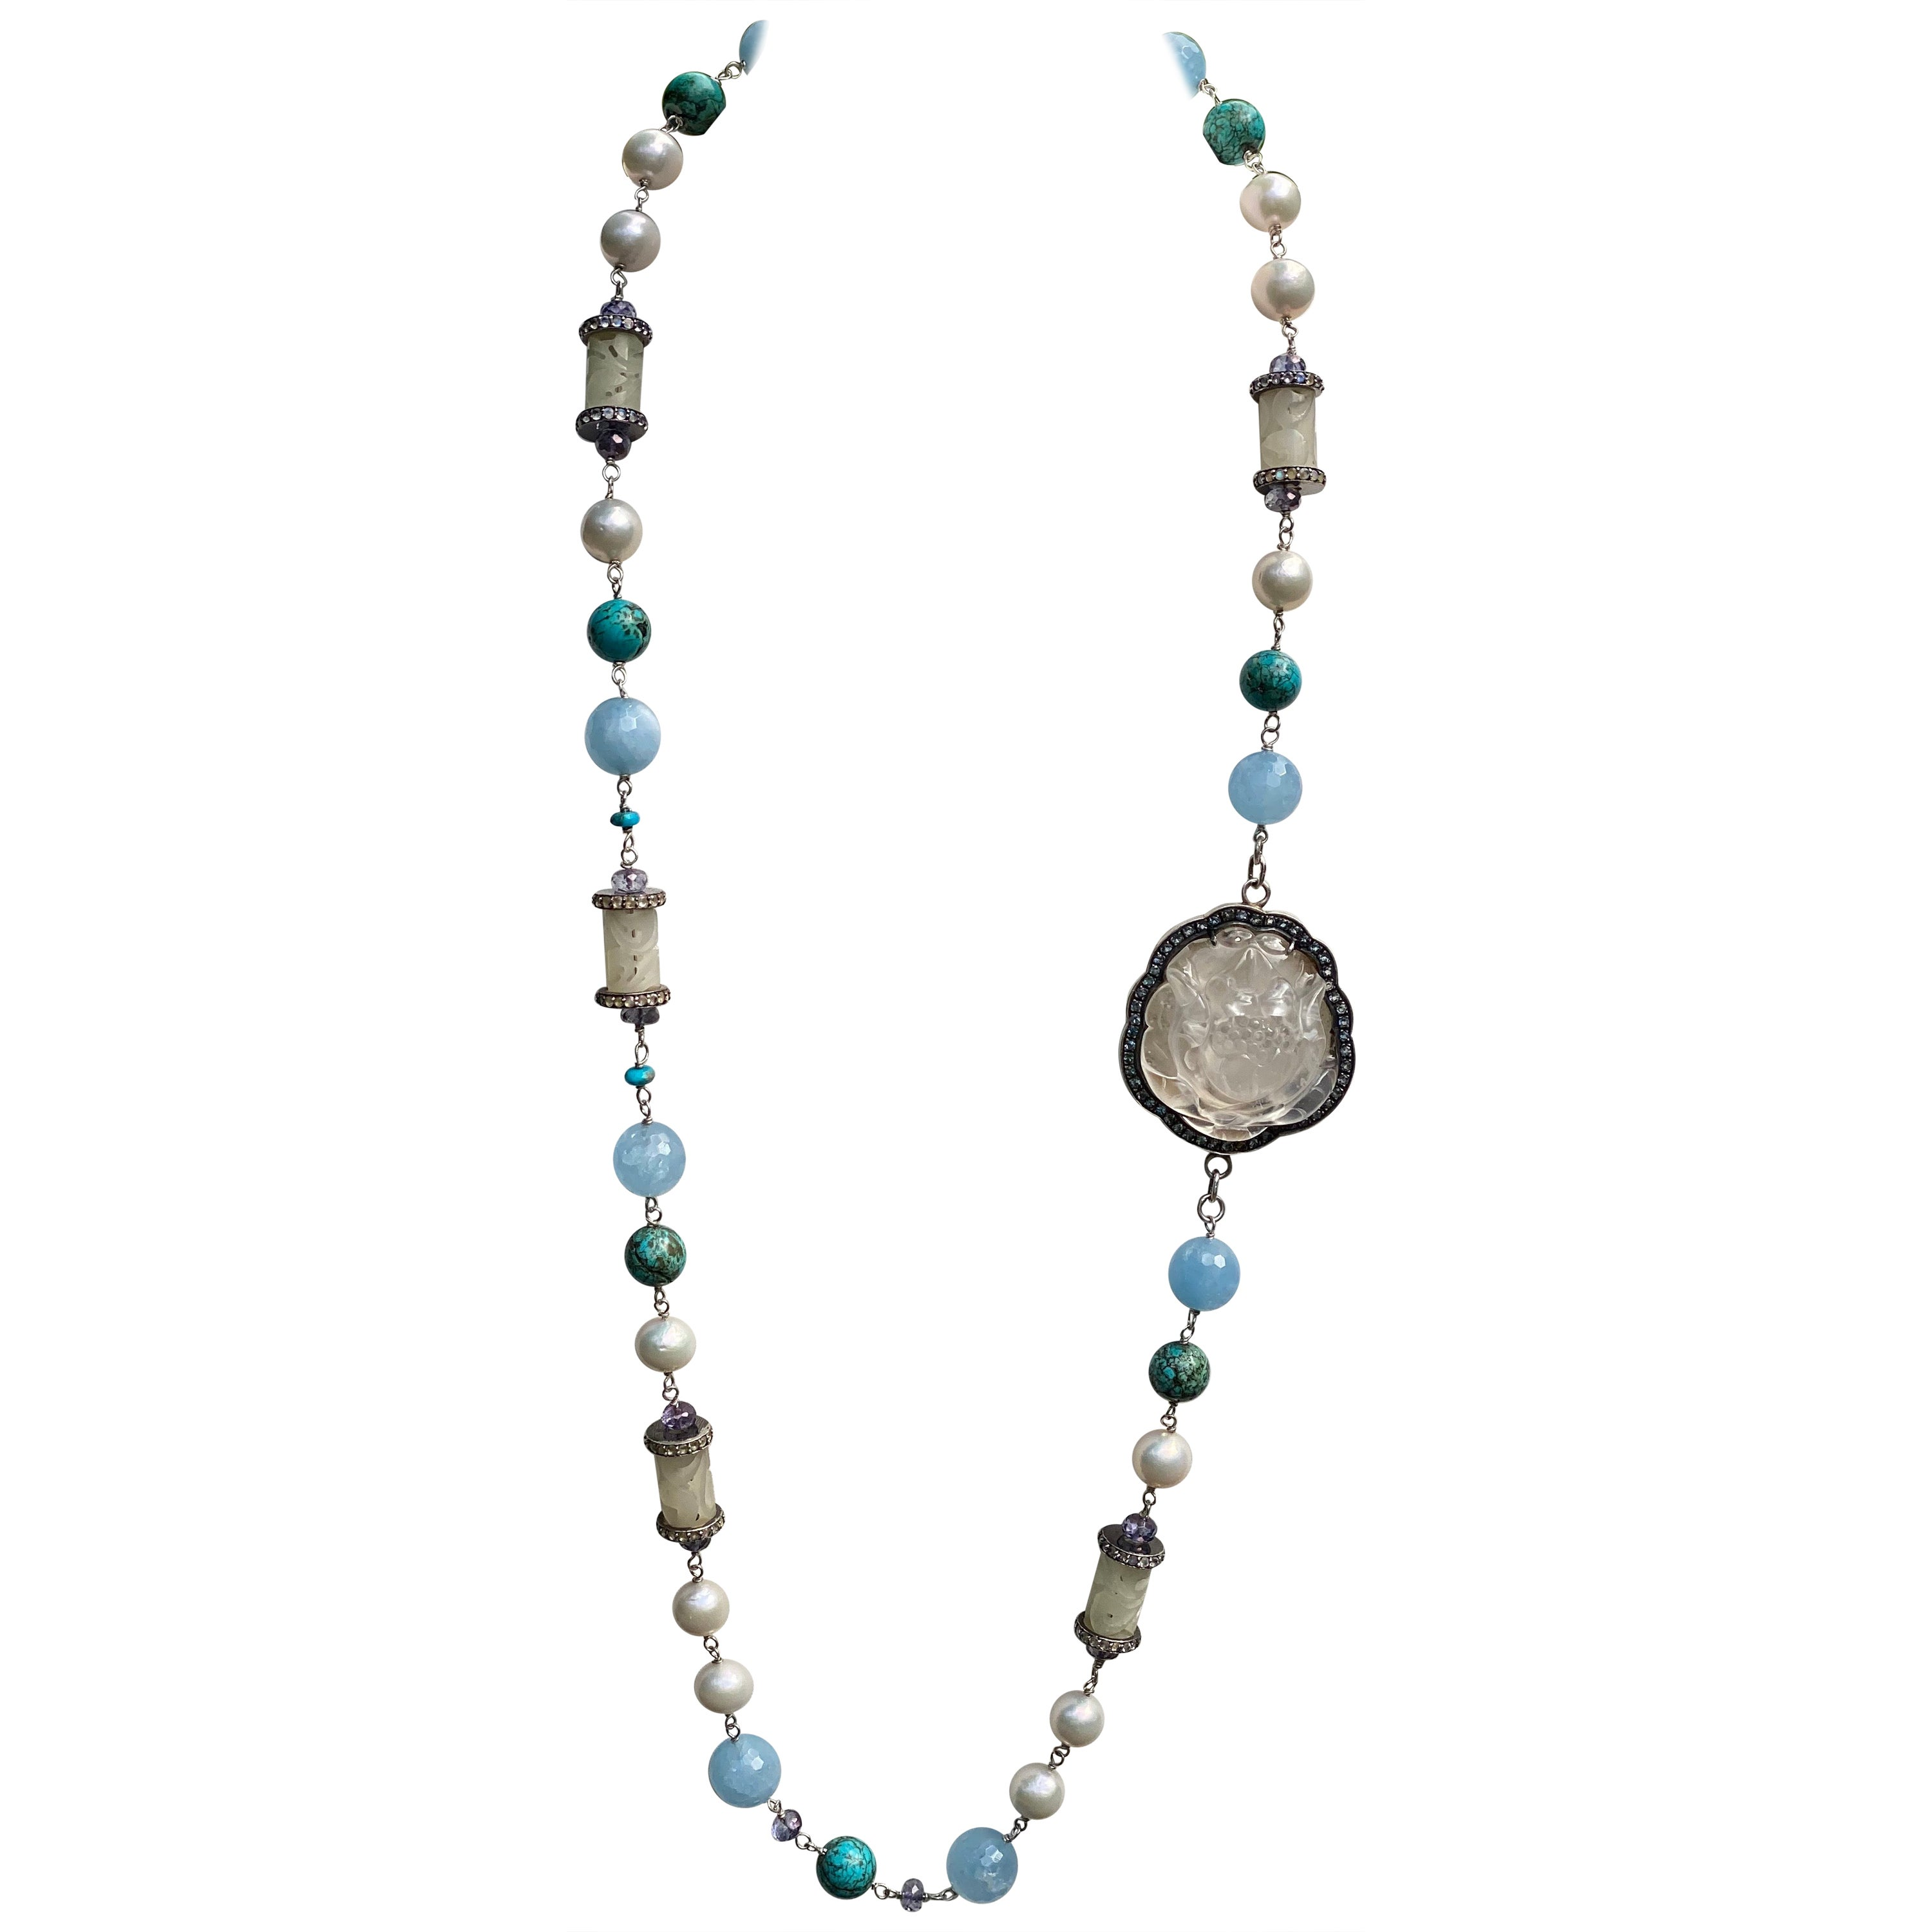 Lotus Queen Necklace with Carved Moonstone, Pearl, White Jade, Aqua, in Silver